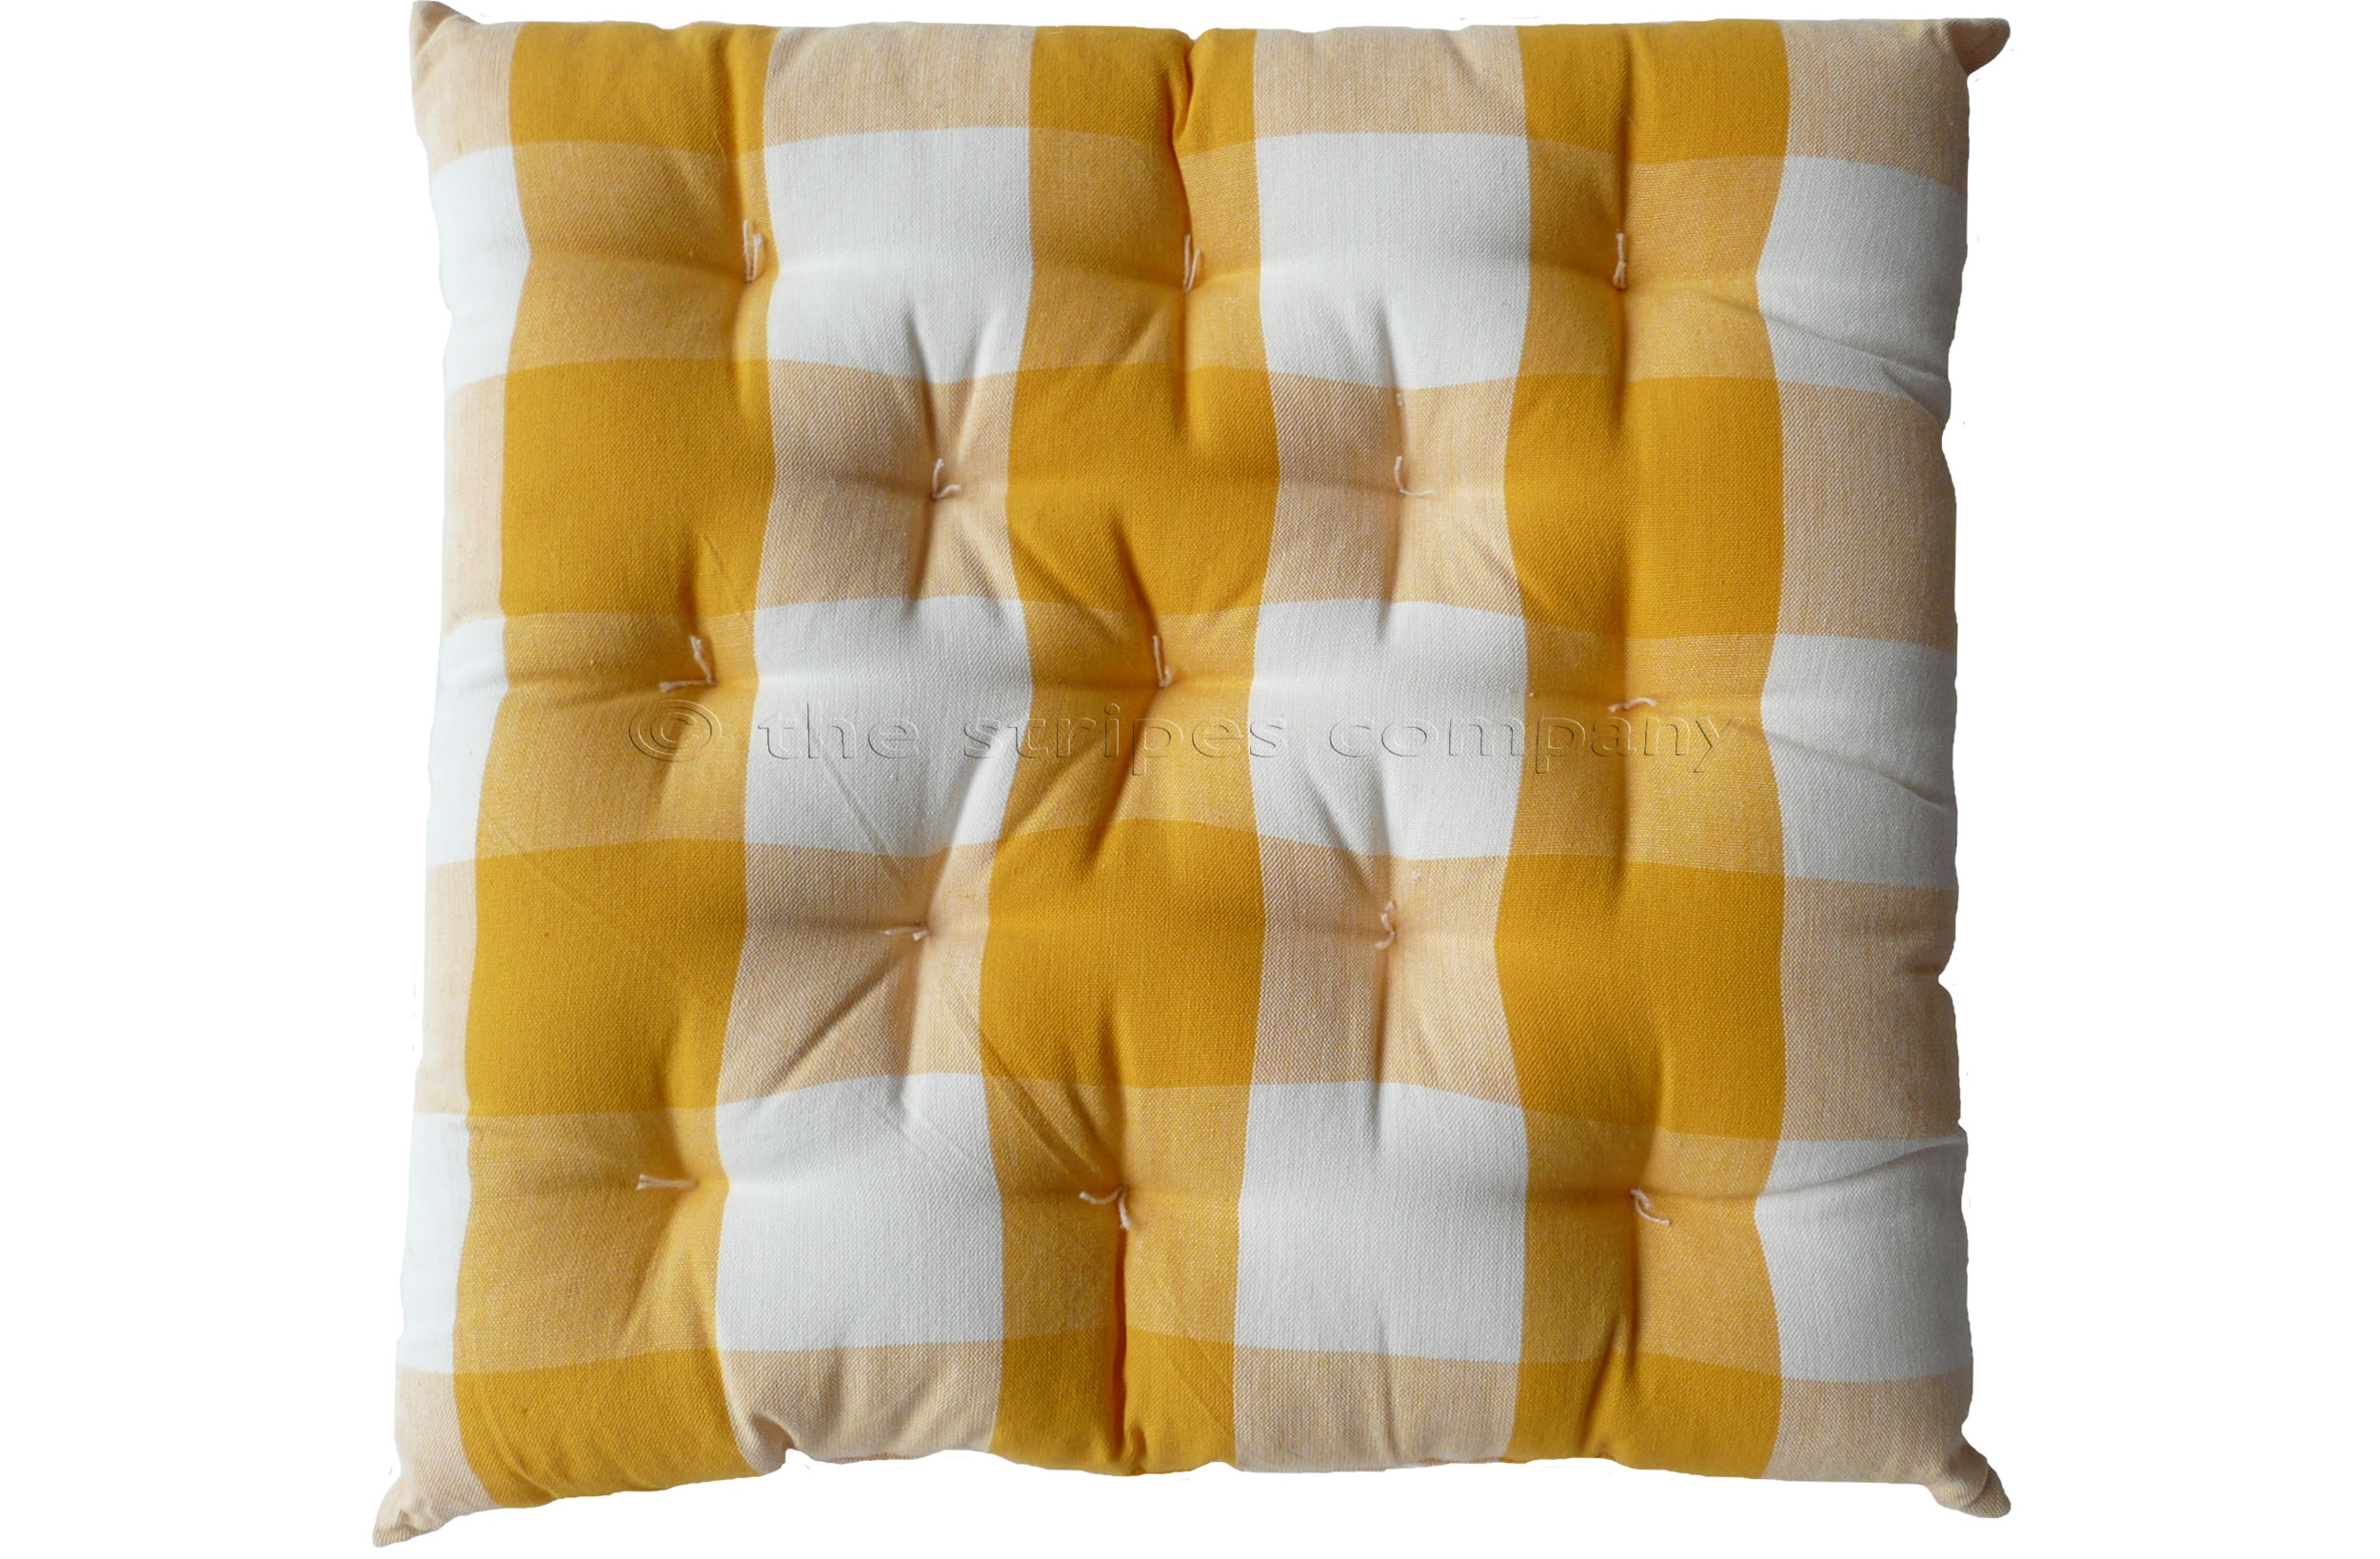 Yellow and White Gingham Seat Pads | Large Check Chair Cushions | Buffalo Gingham Seat Pads